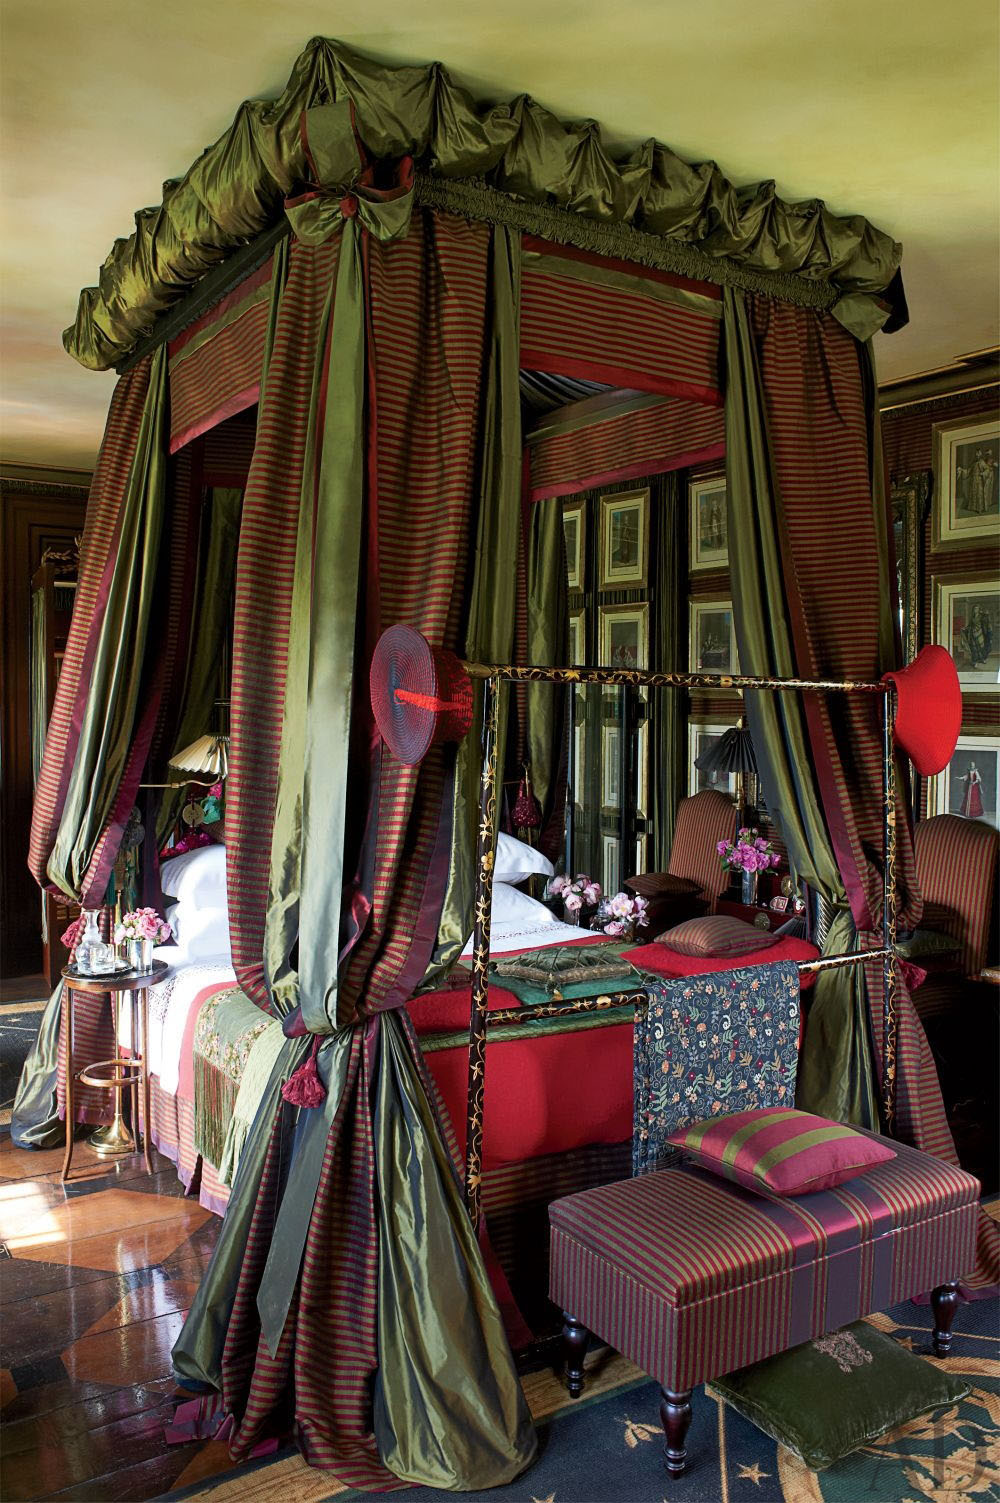 The Maison Canopy Bed